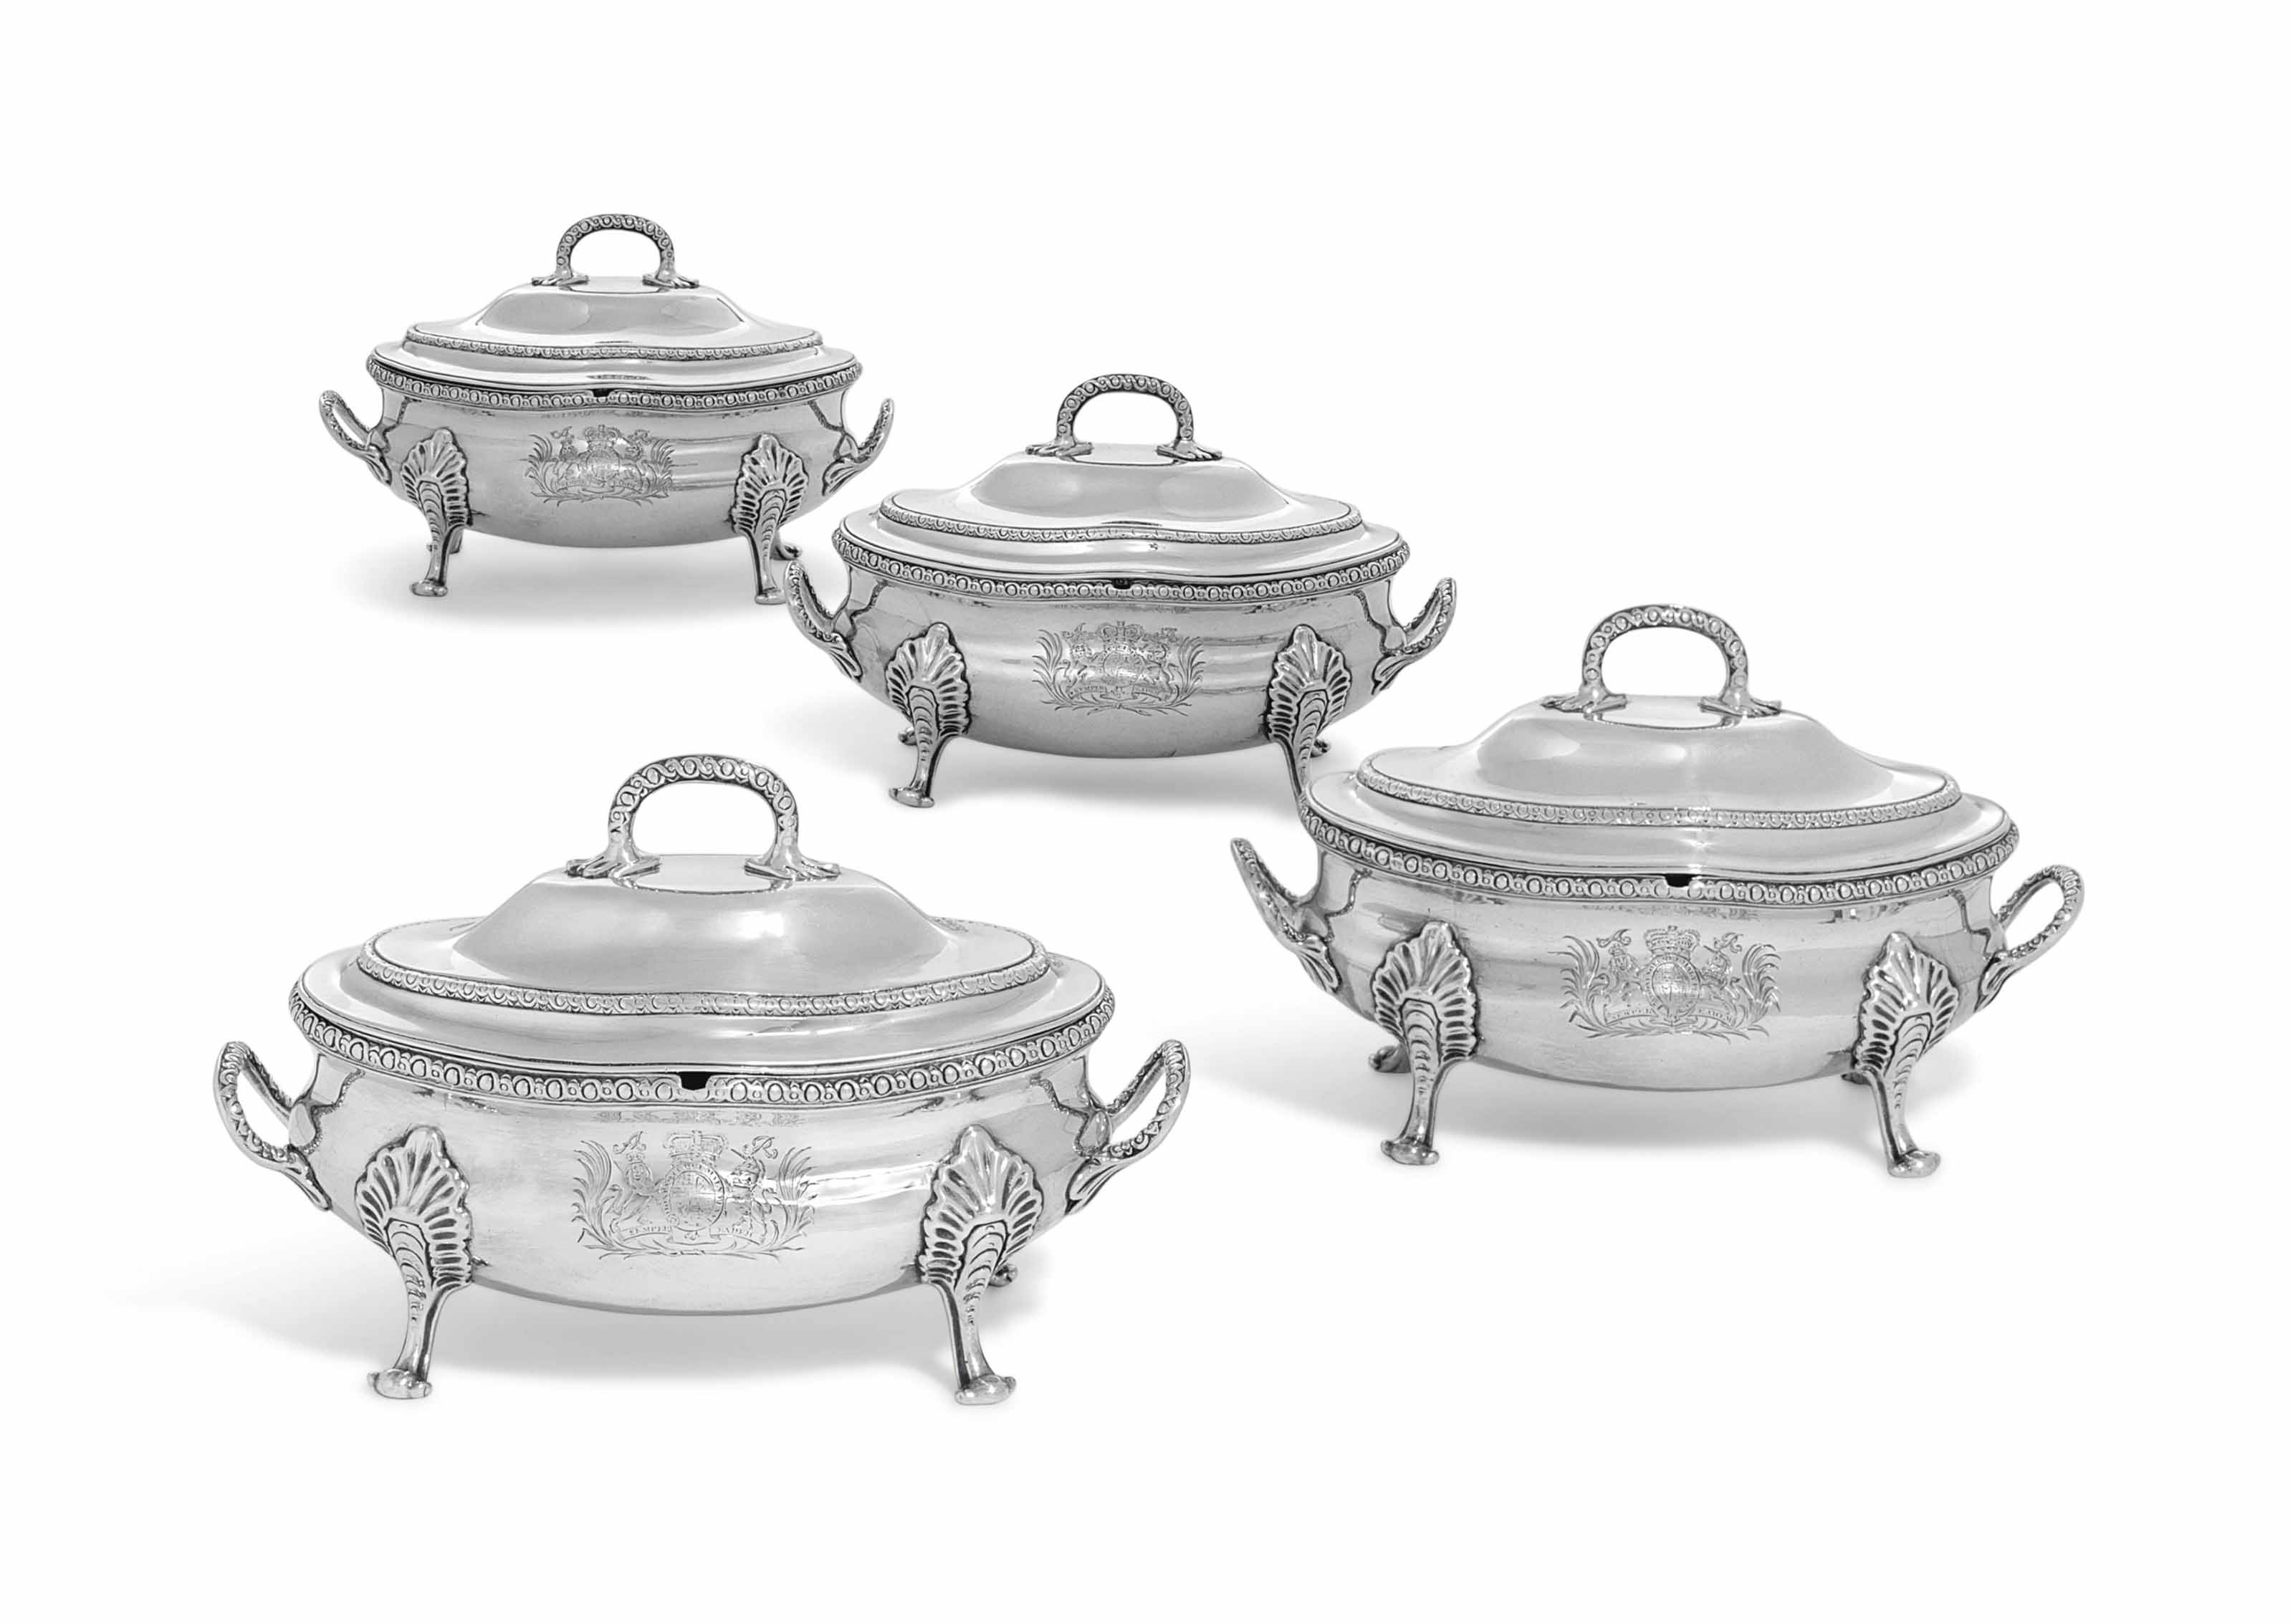 A SET OF FOUR GEORGE III SILVER SAUCE-TUREENS AND COVERS FROM THE SPEAKER SMITH SERVICE